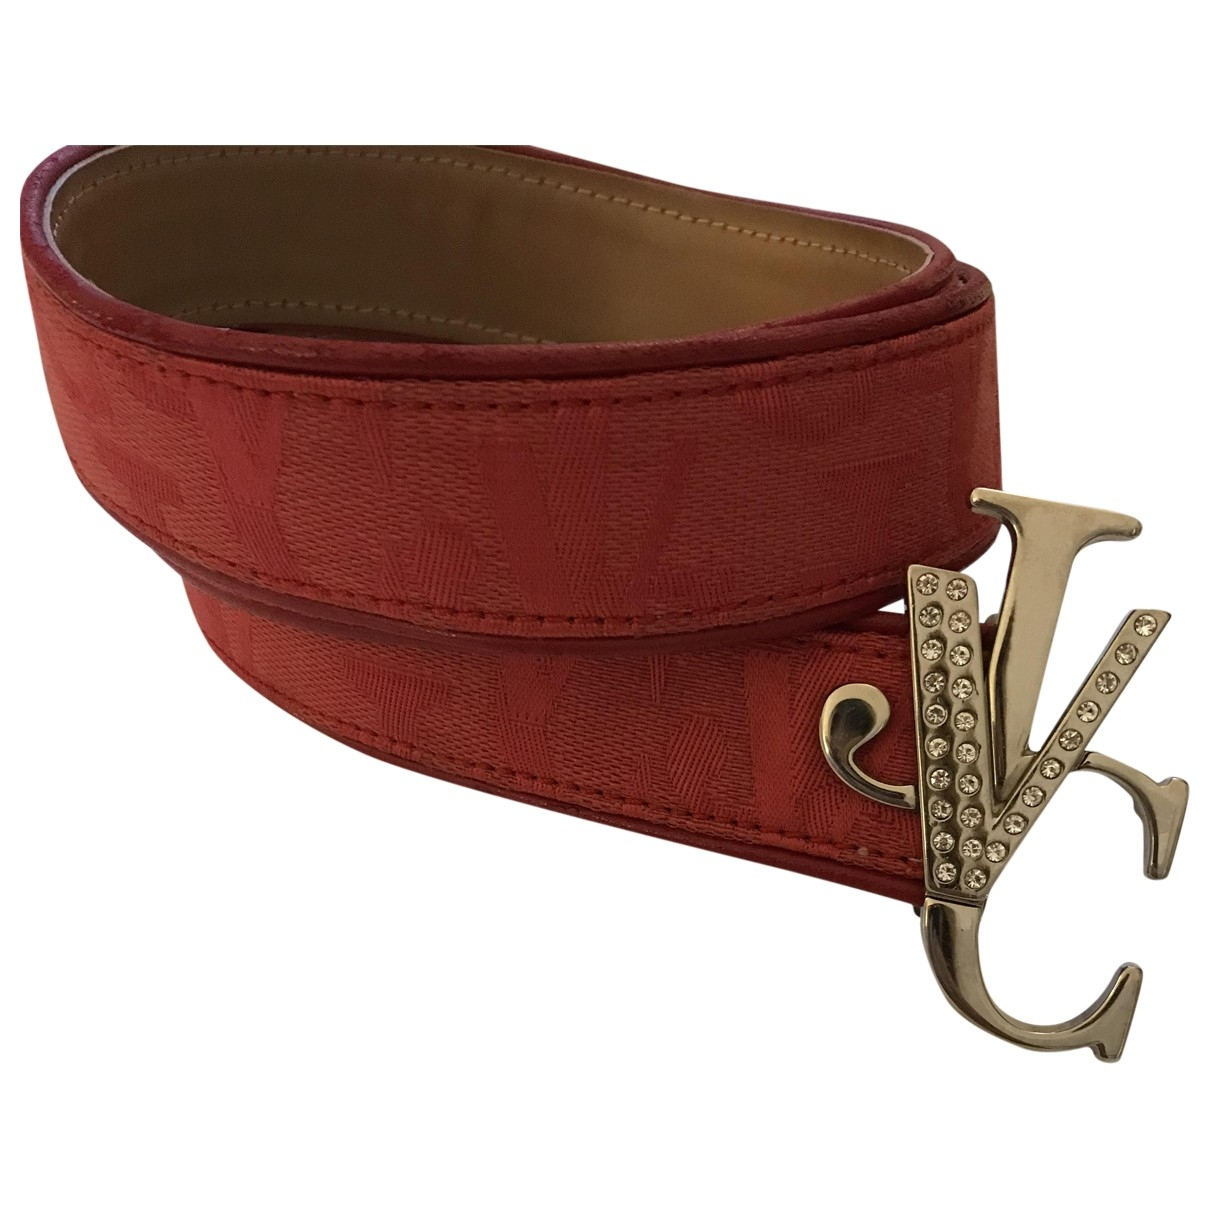 Versace Jeans \N Red Cotton belt for Women 85 cm